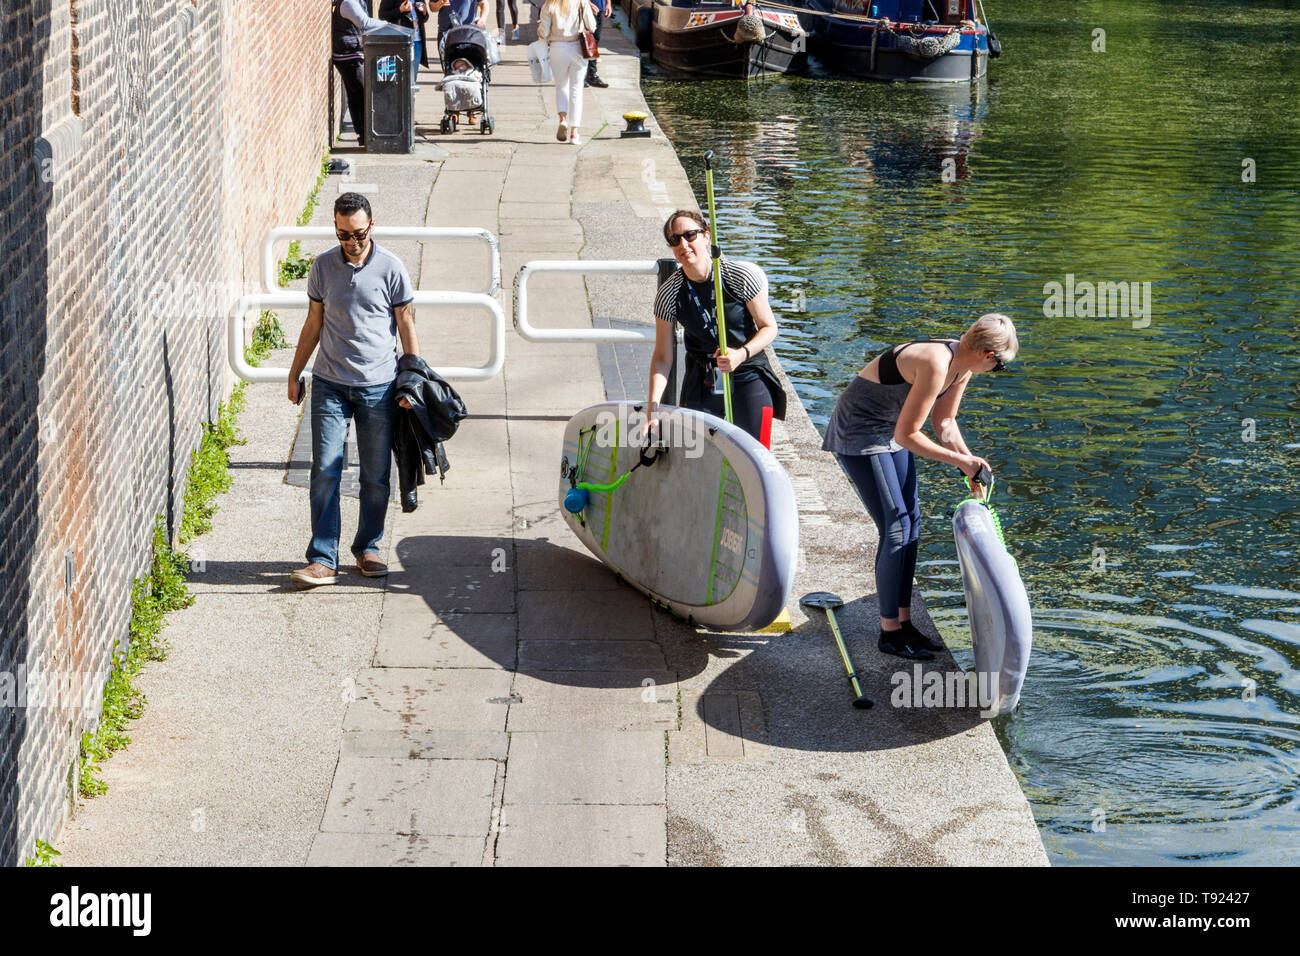 Two female paddleboarders exiting Regent's Canal onto the towpath at St Pancras Lock, King's Cross, London, UK - Stock Image